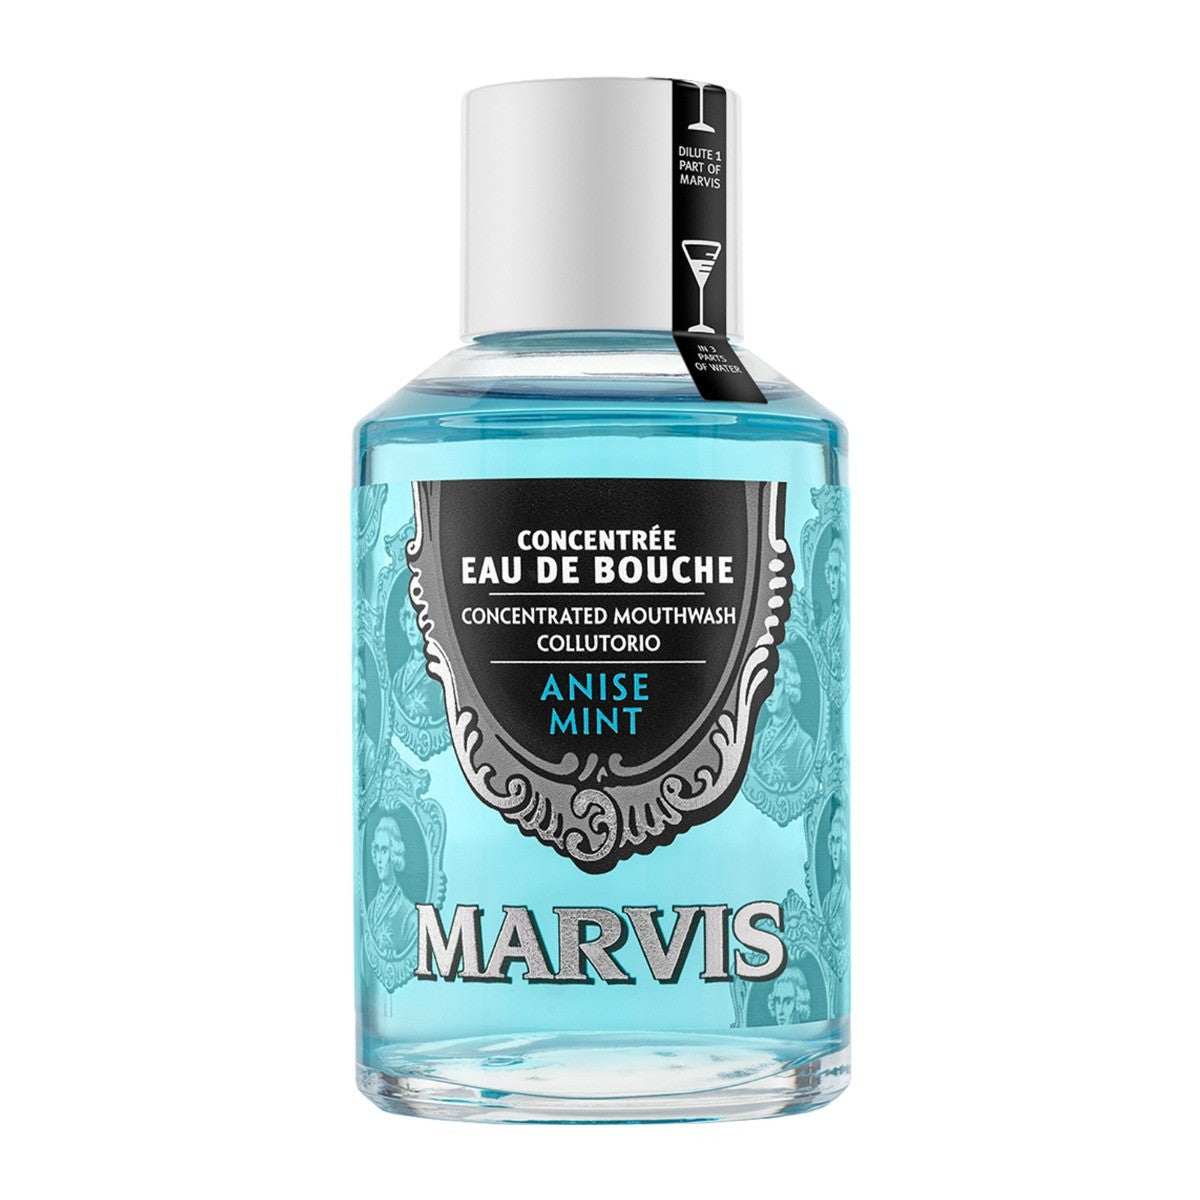 Marvis Mouthwash Concentrate - Anise